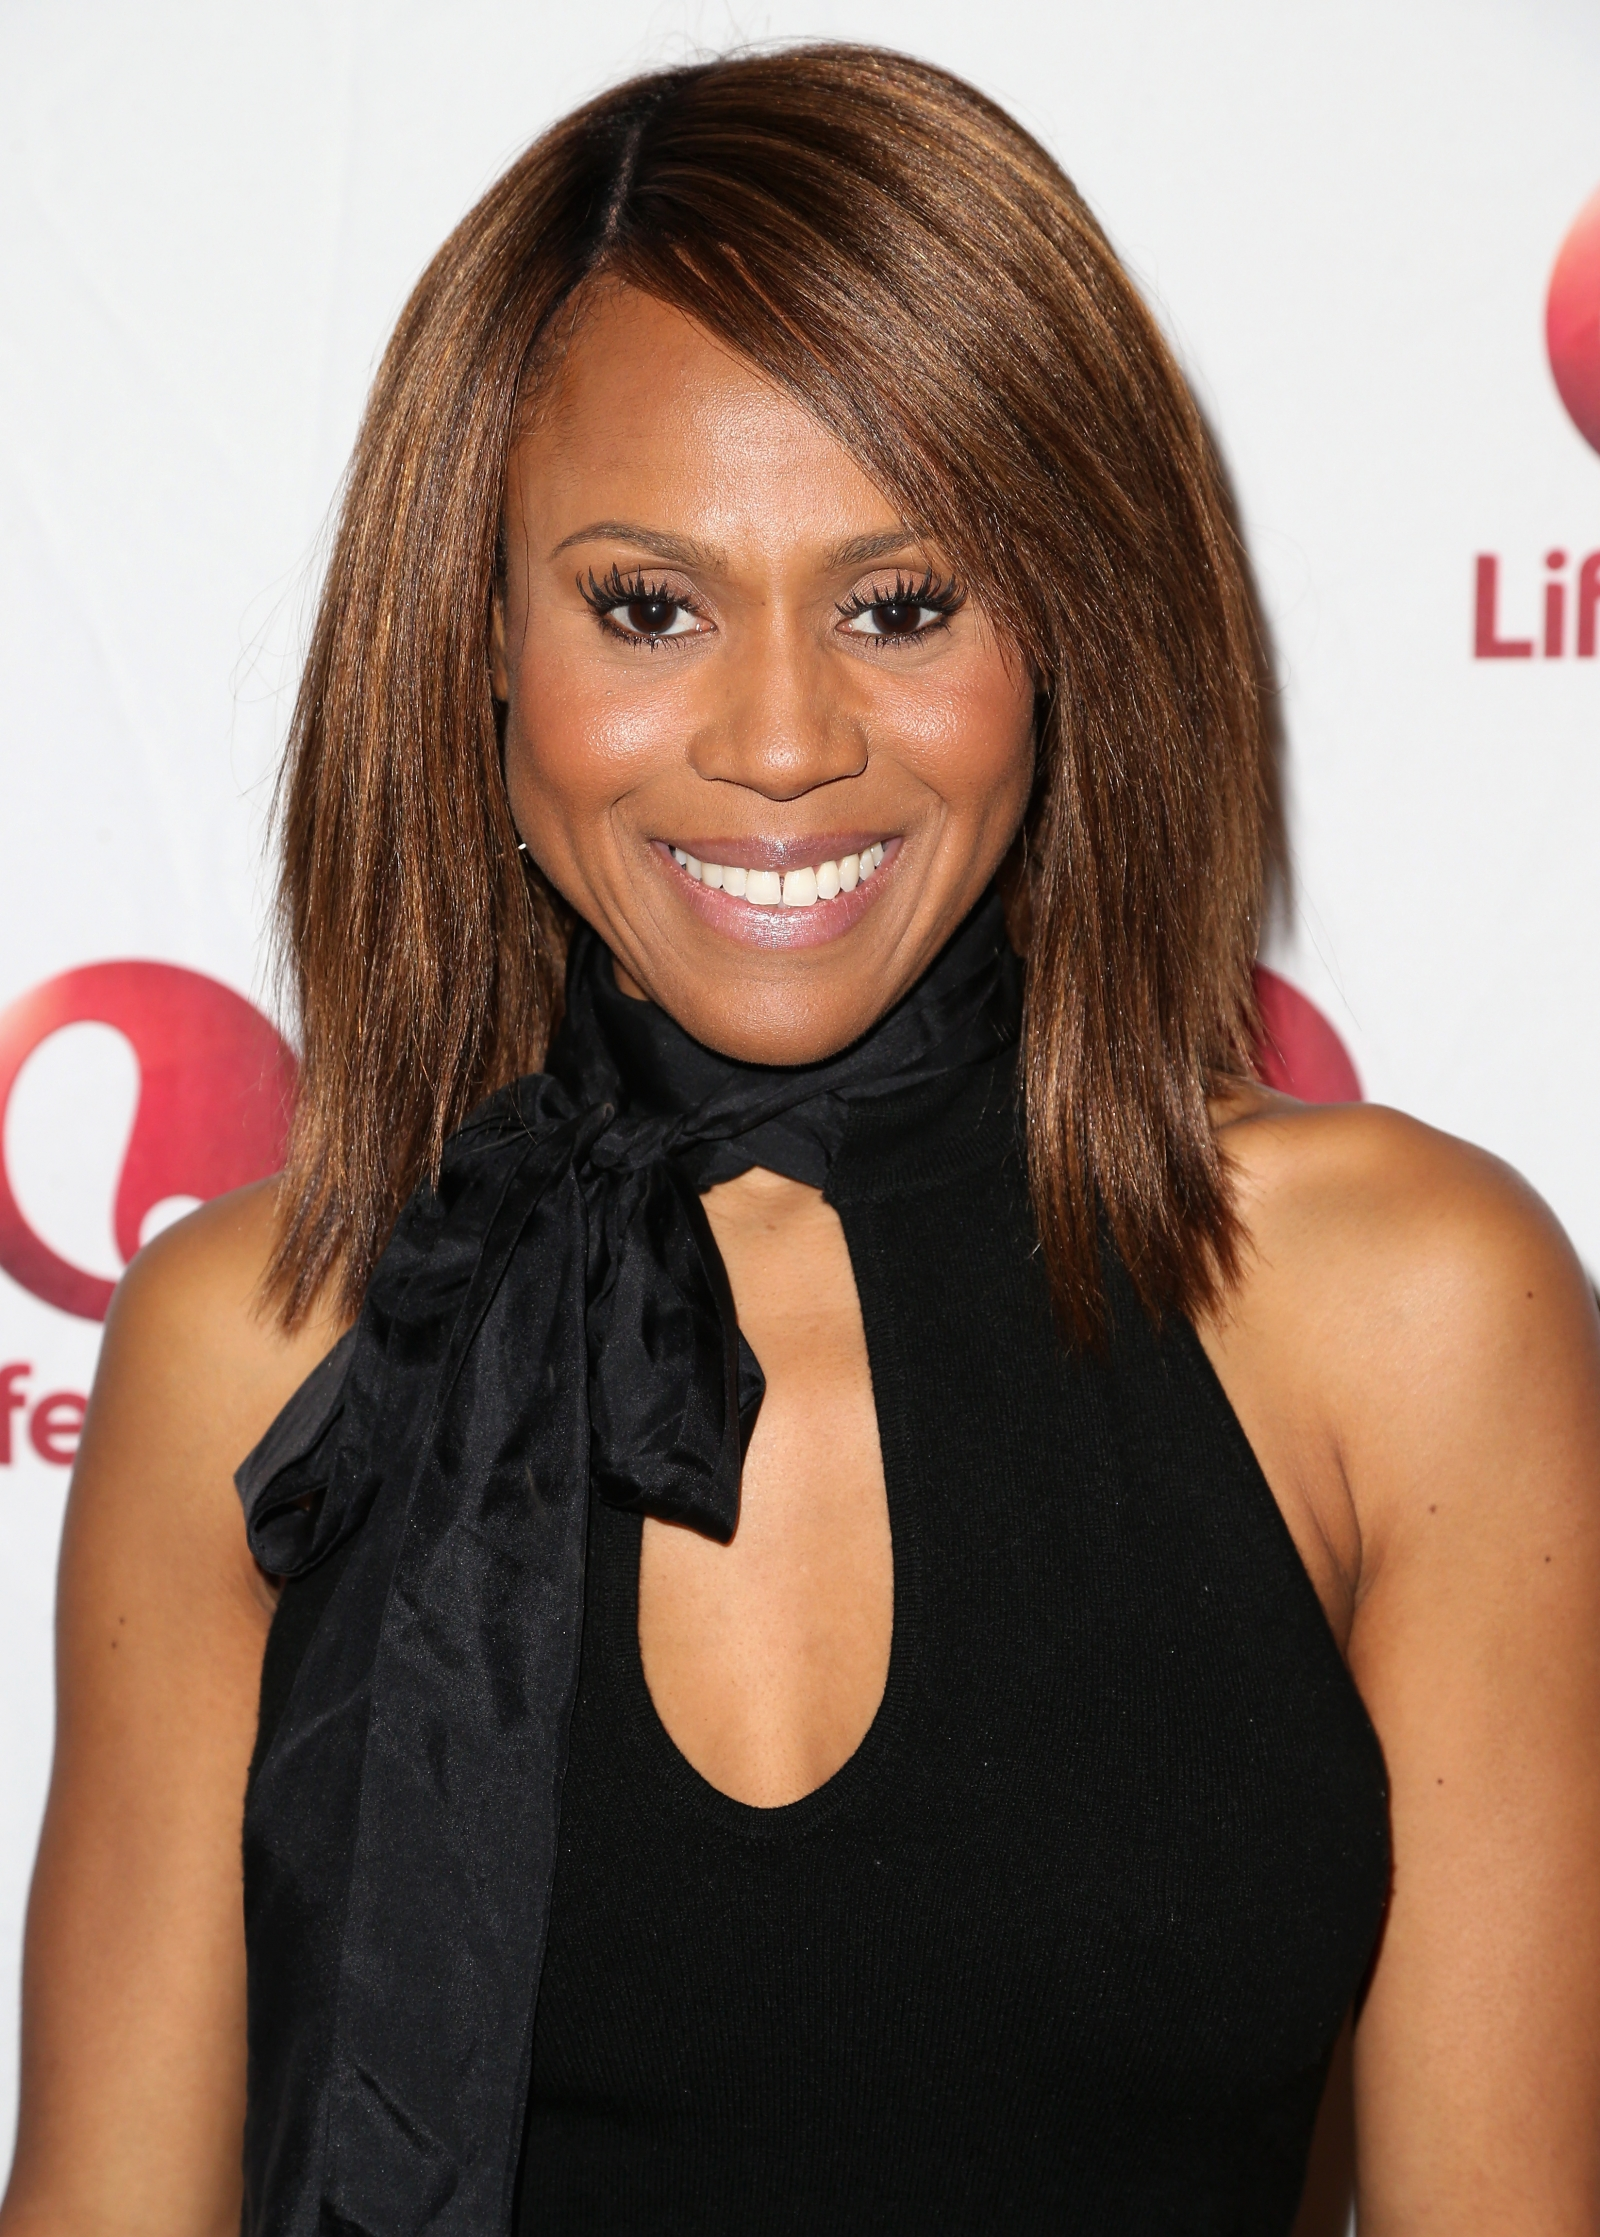 Bobbi kristina brown deborah cox praying for miracle to for Cox houston